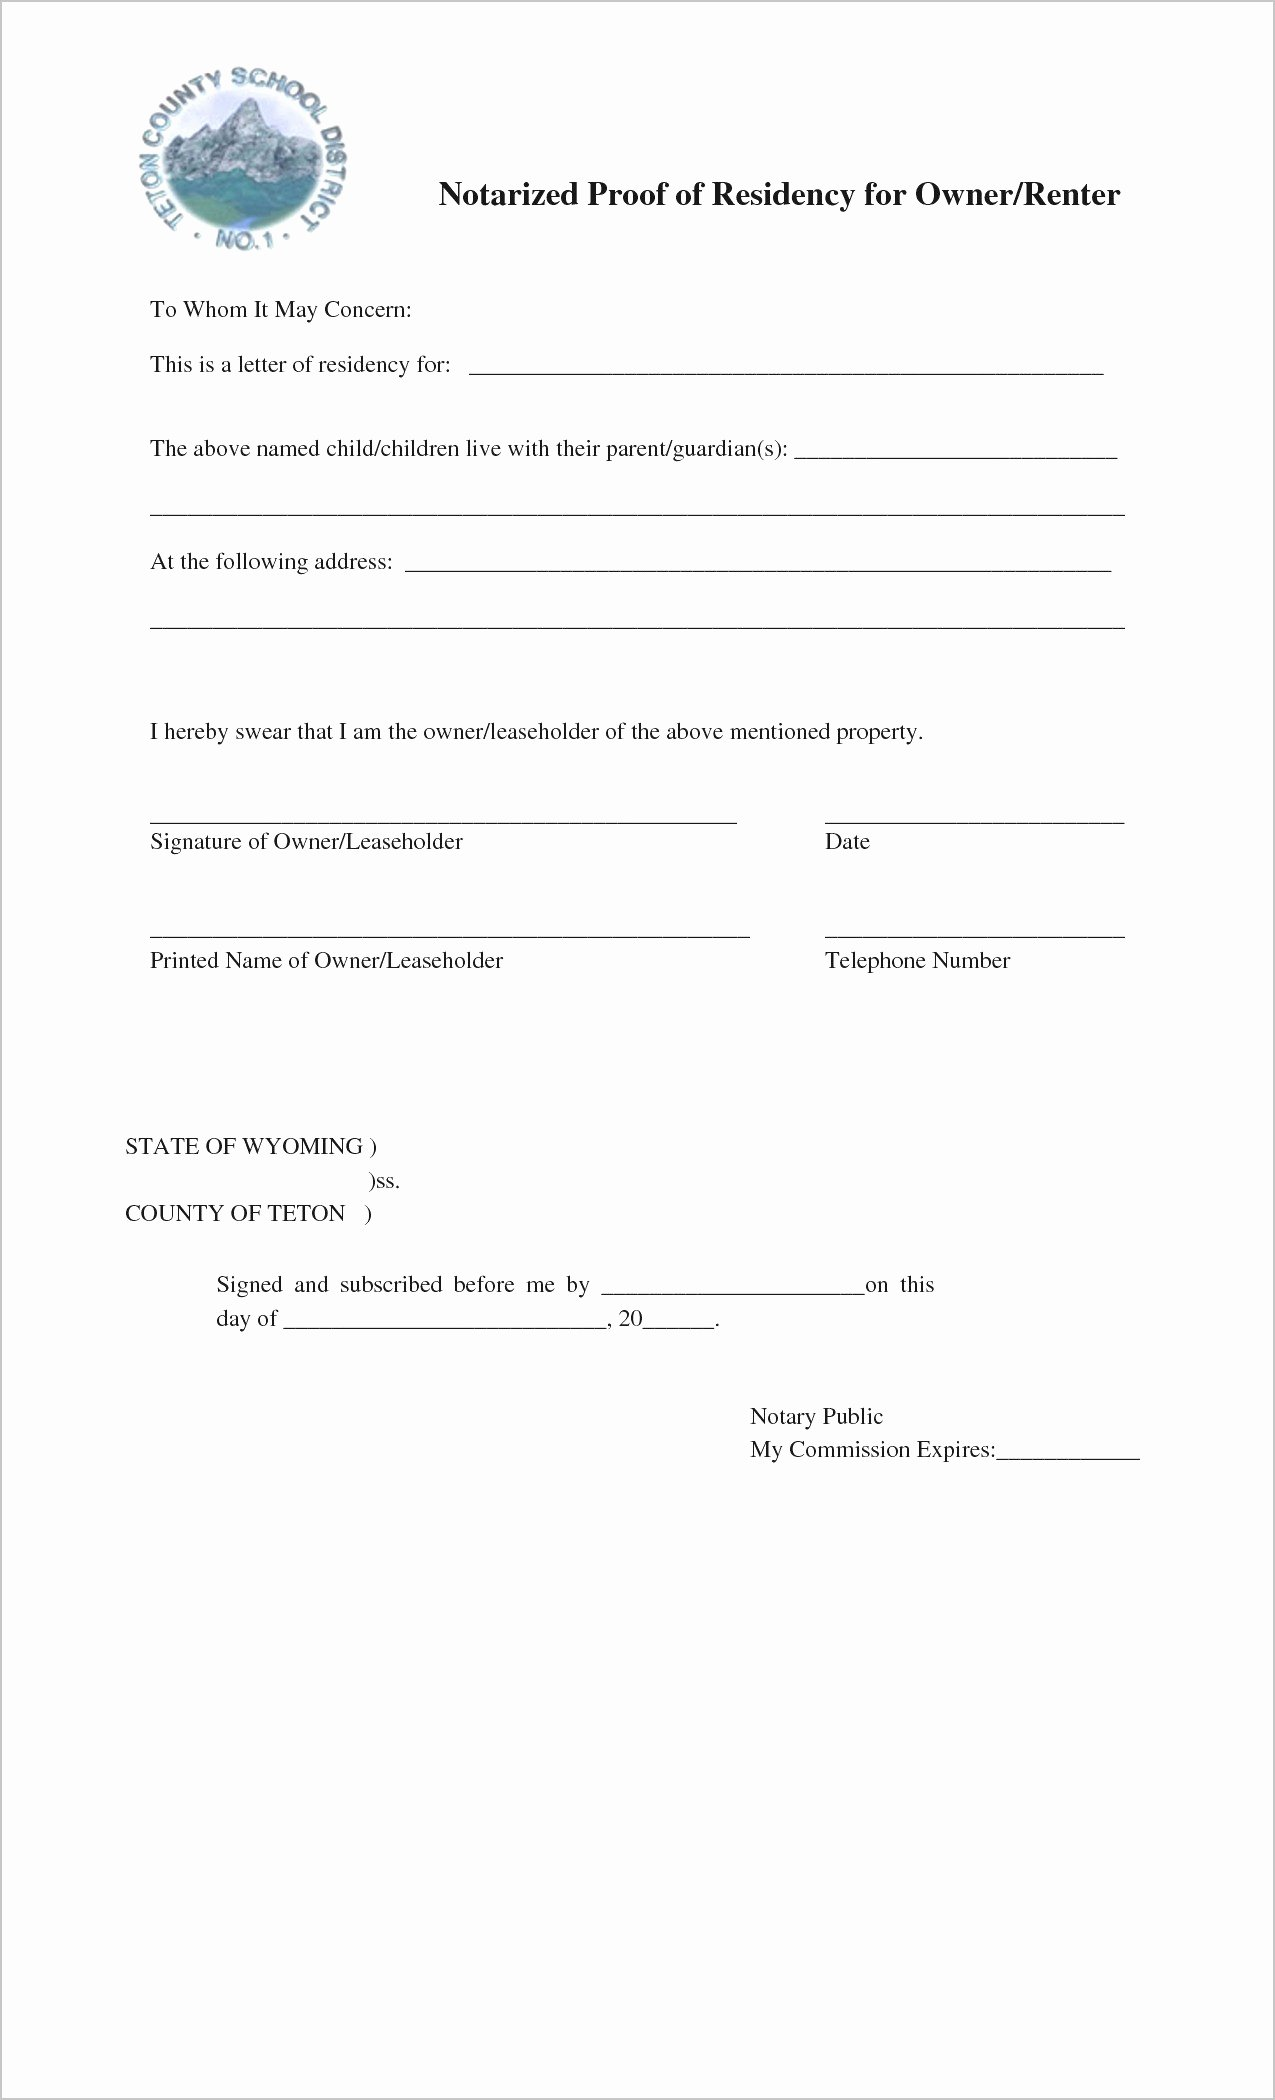 Printable Notarized Letter Of Residency Template Unique Printable Notarized Letter Residency Template